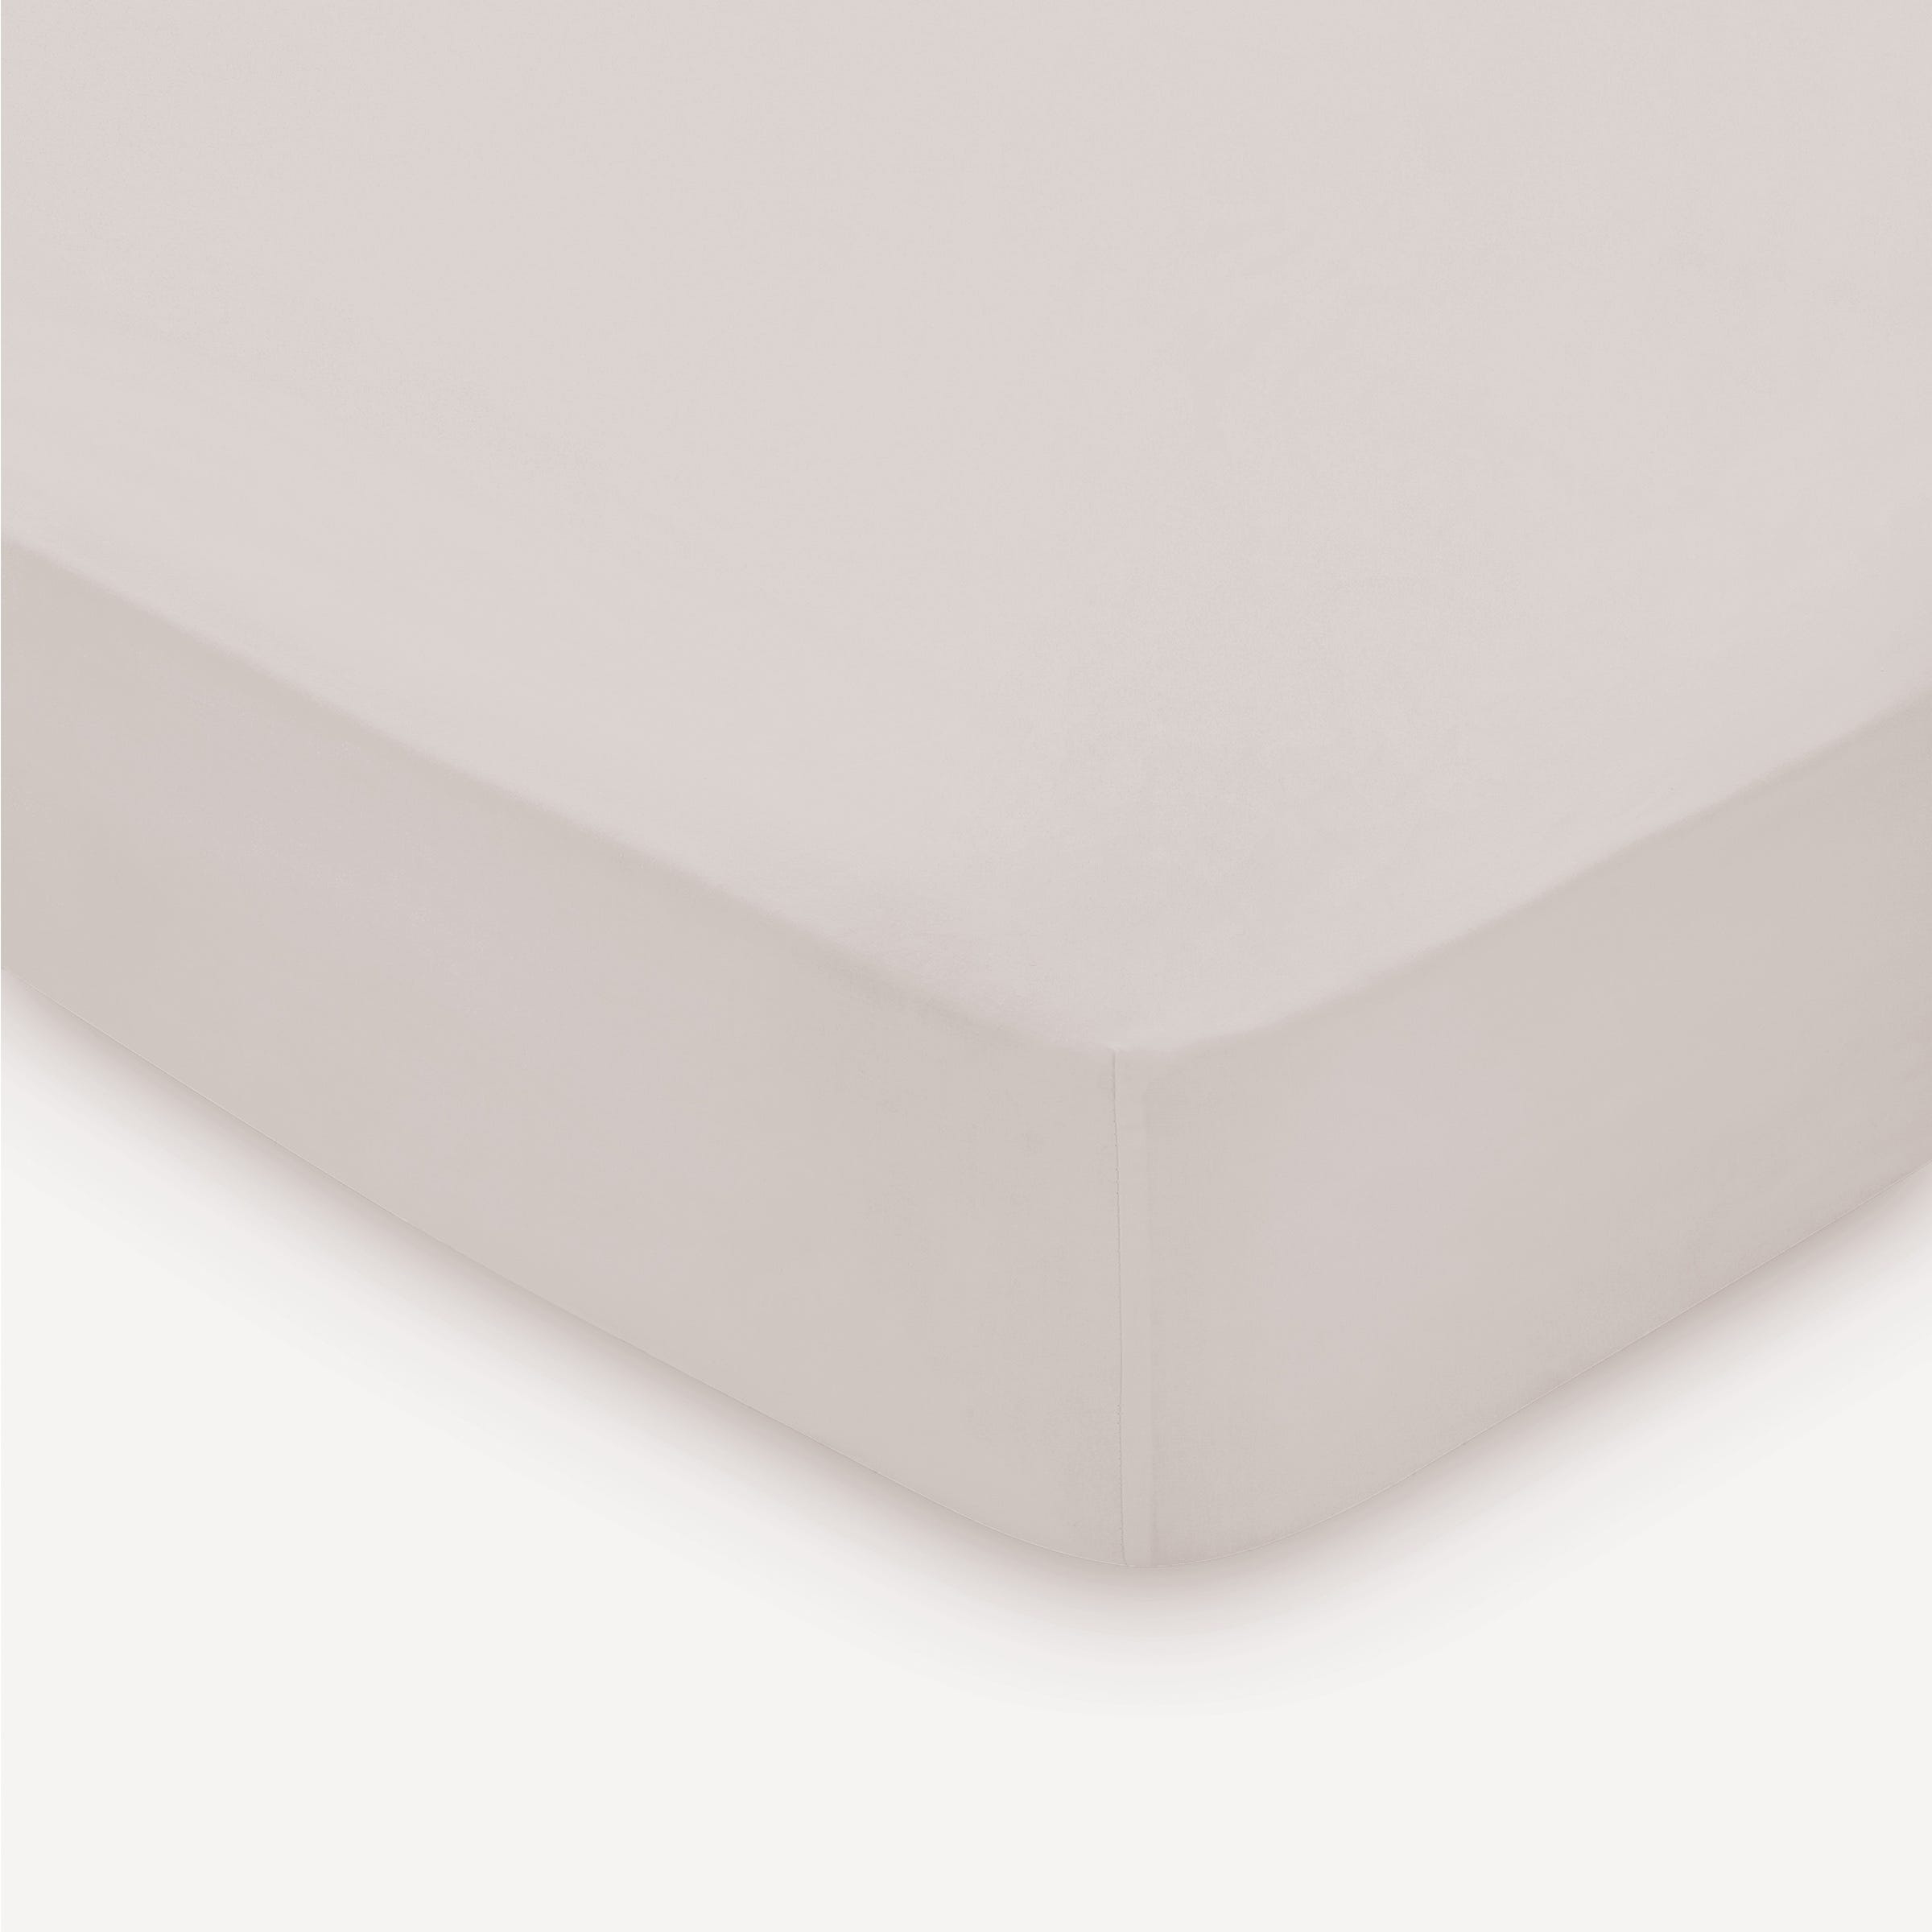 300 Thread Count Super Kingsize Fitted Sheet, Cashmere